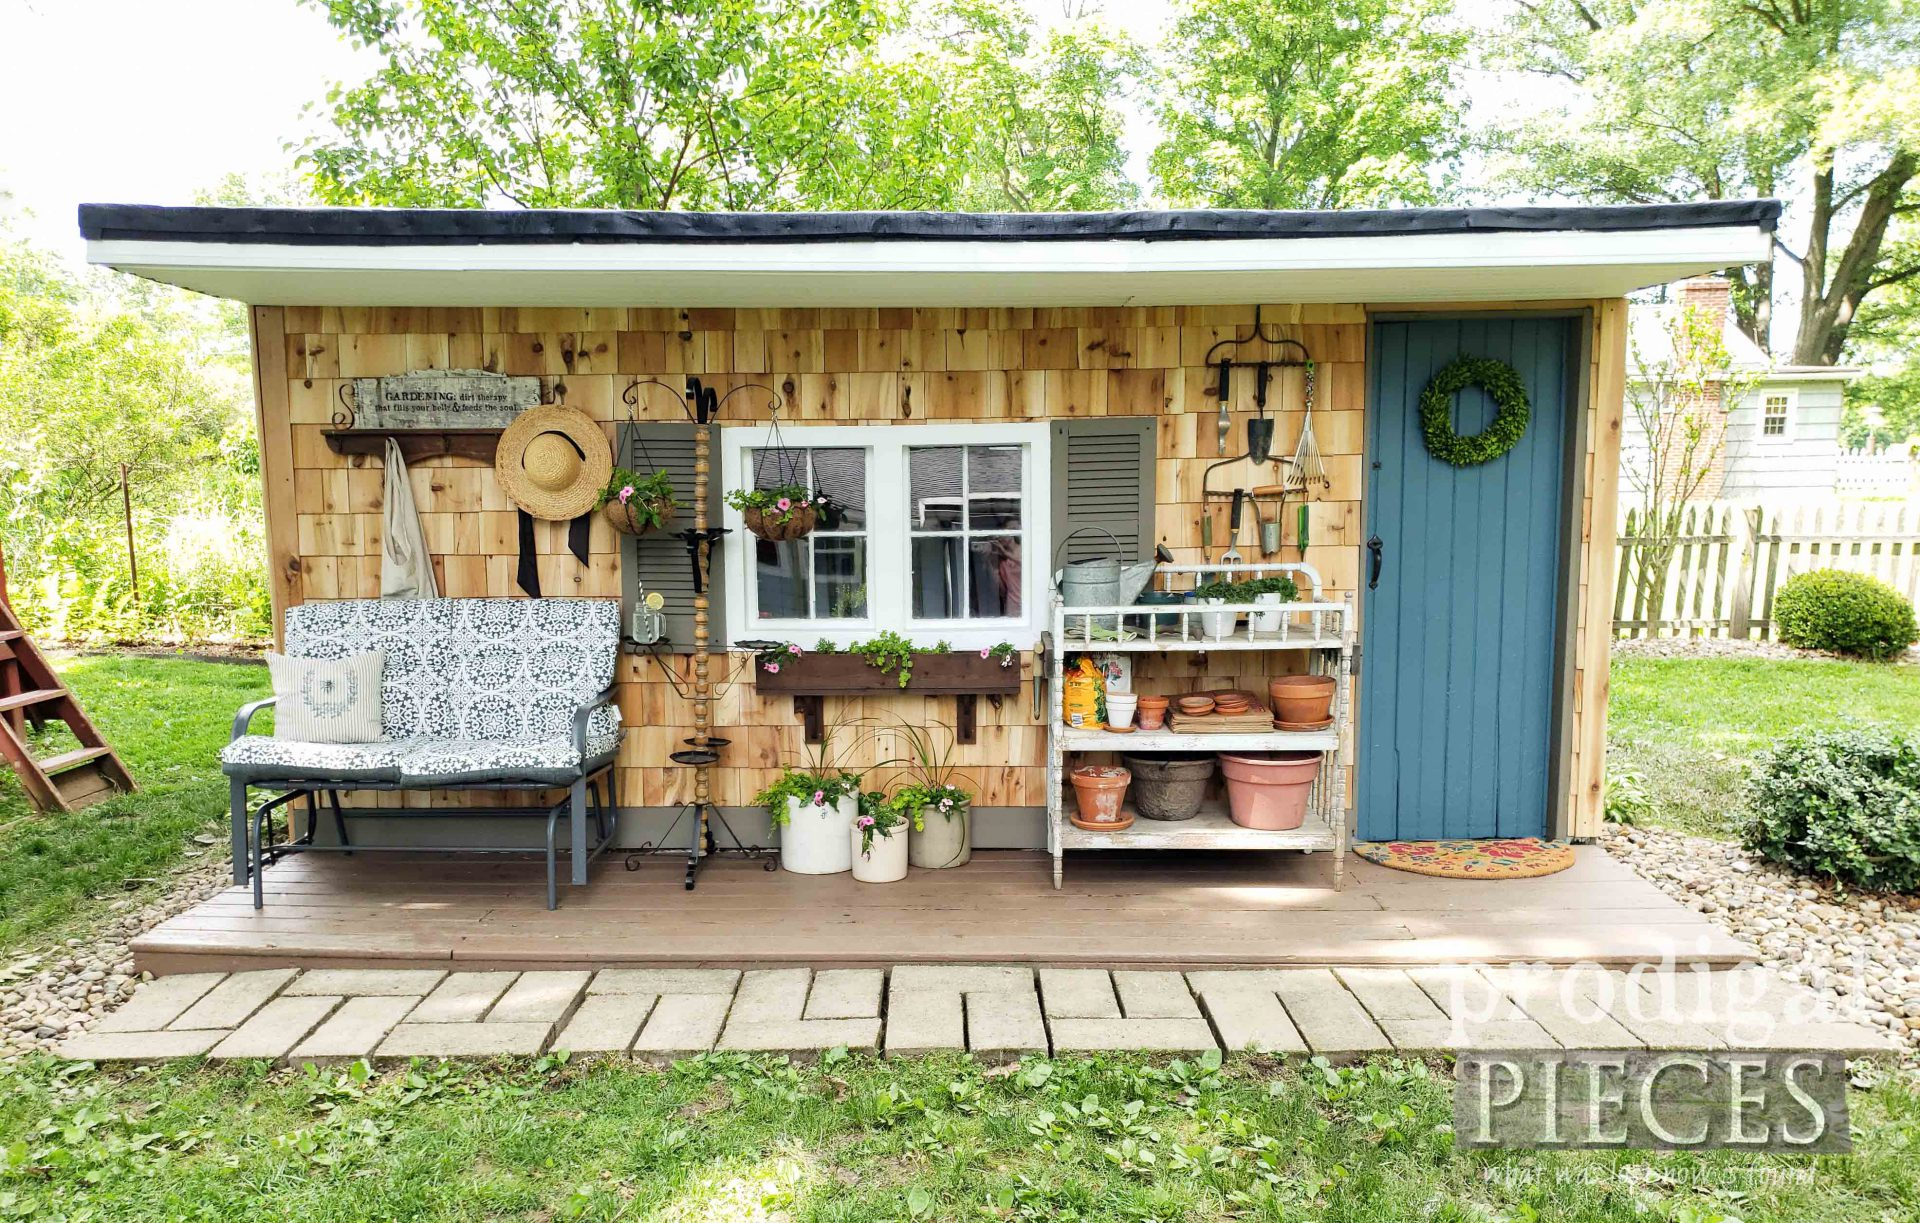 Prodigal Pieces Garden Shed Remodel | prodigalpieces.com #prodigalpieces #diy #garden #farmhouse #home #homedecor